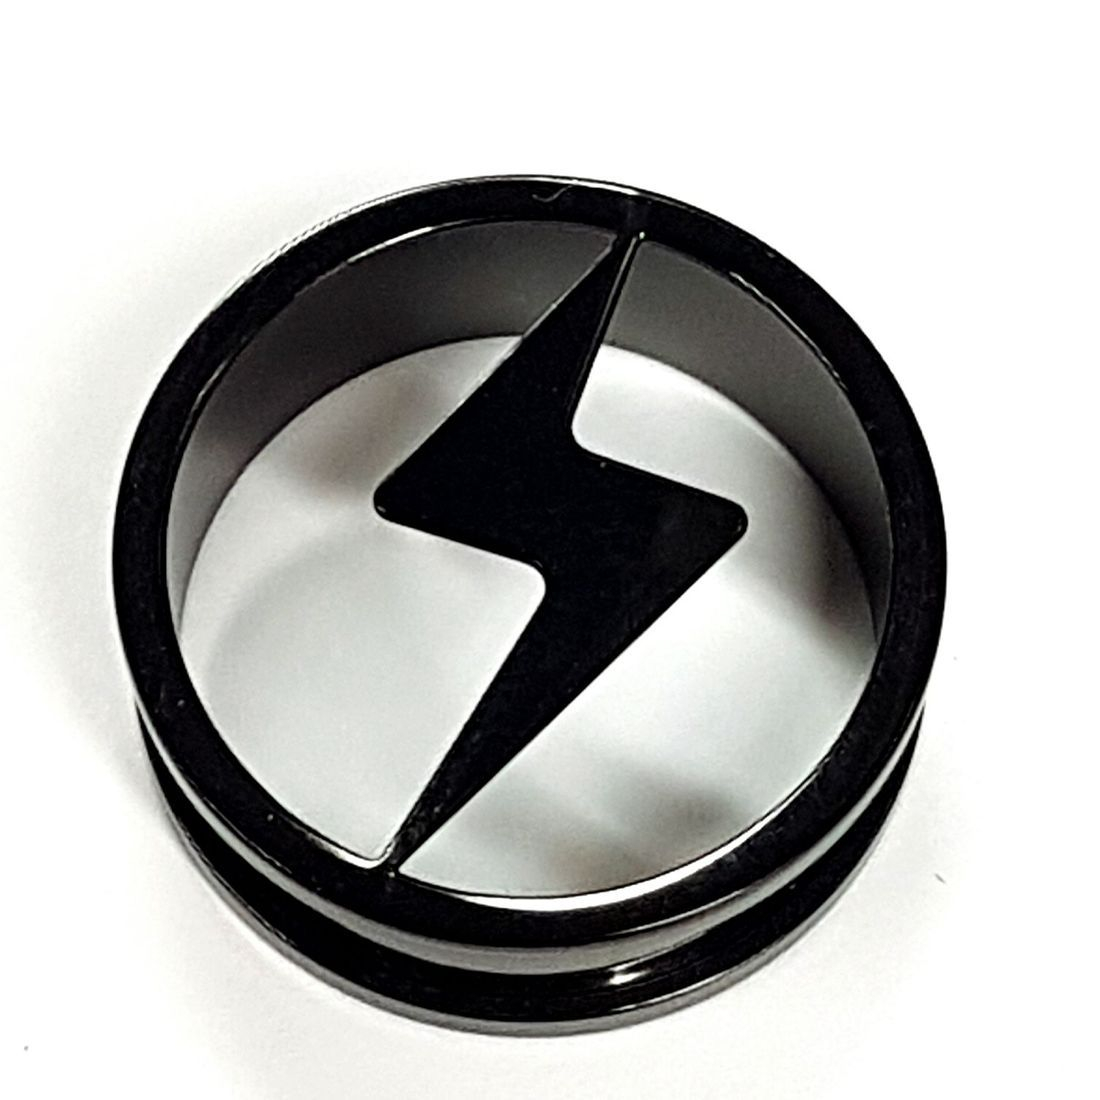 Titanium lightning bolt tunnel available from Kazbah online or our Leicester city centre store